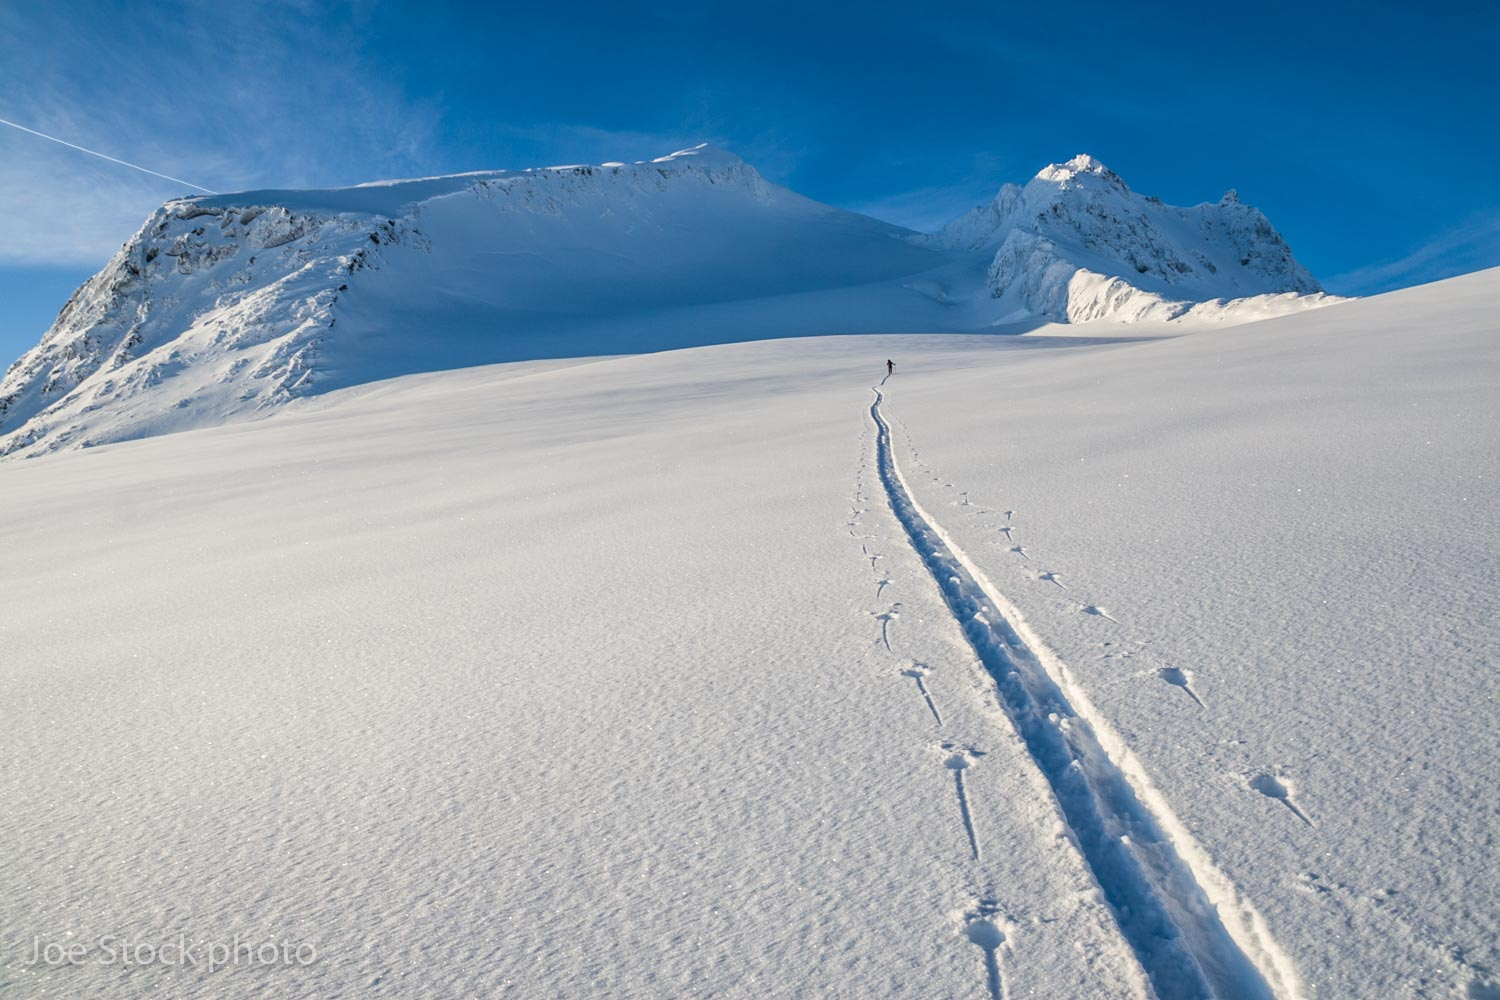 Cathy and Max touring toward Girls Mountain (6,154'). Our turns off the summit were impeccable, 45-degree powder.